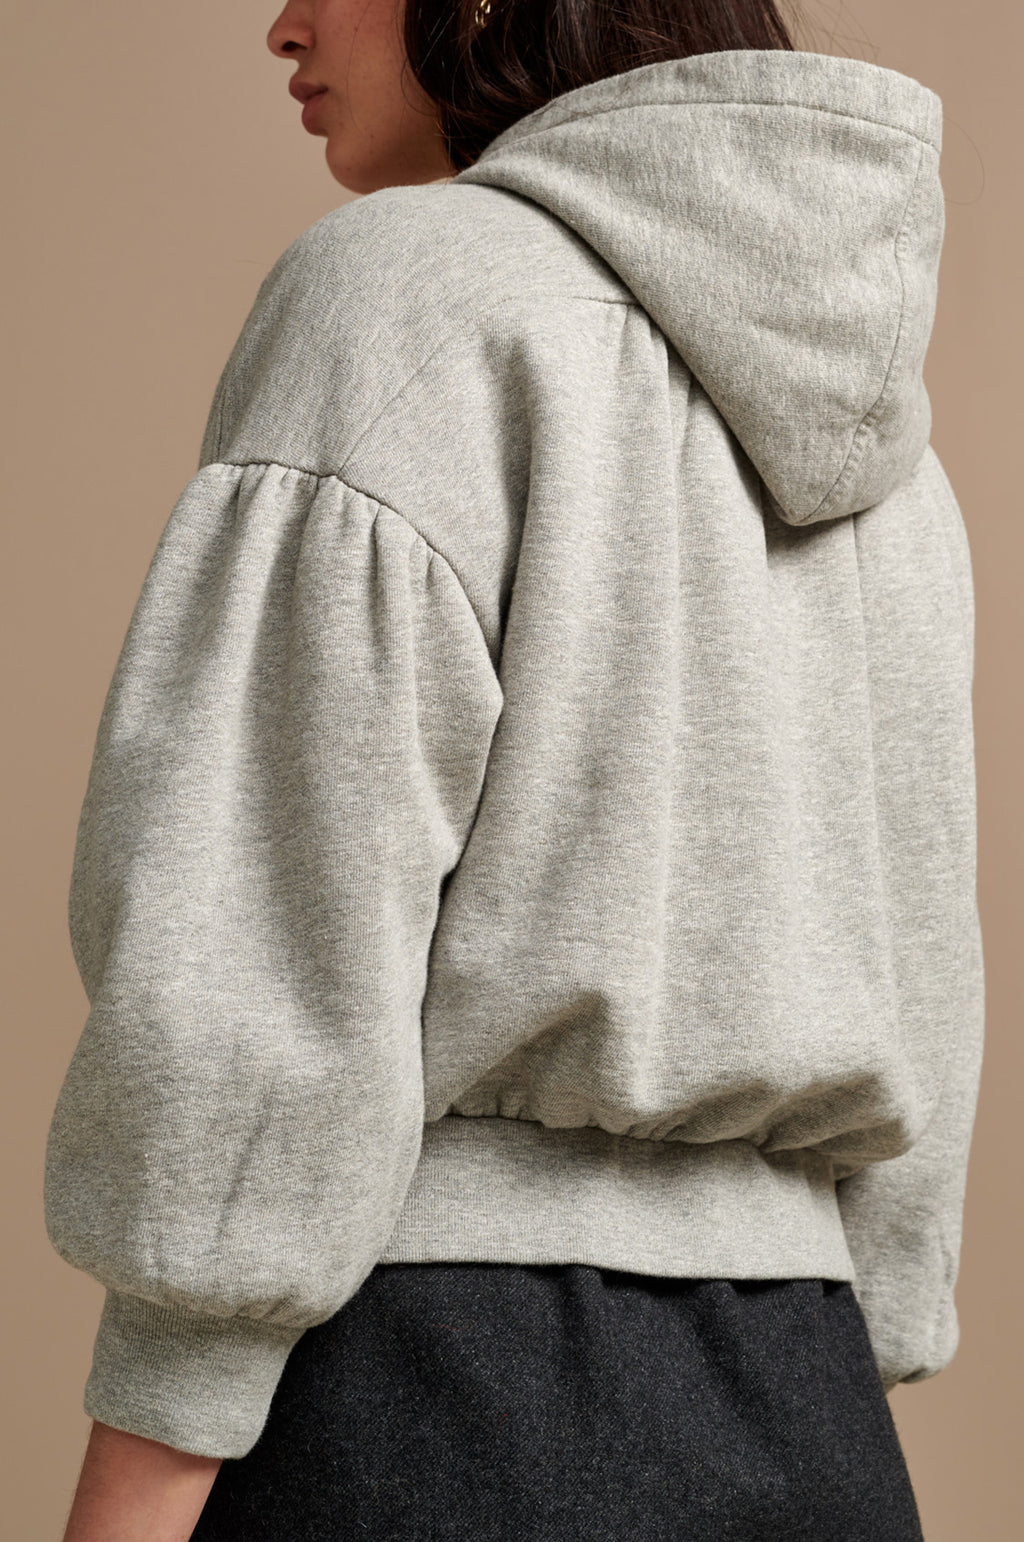 Bloom Sweatshirt in Heather Grey